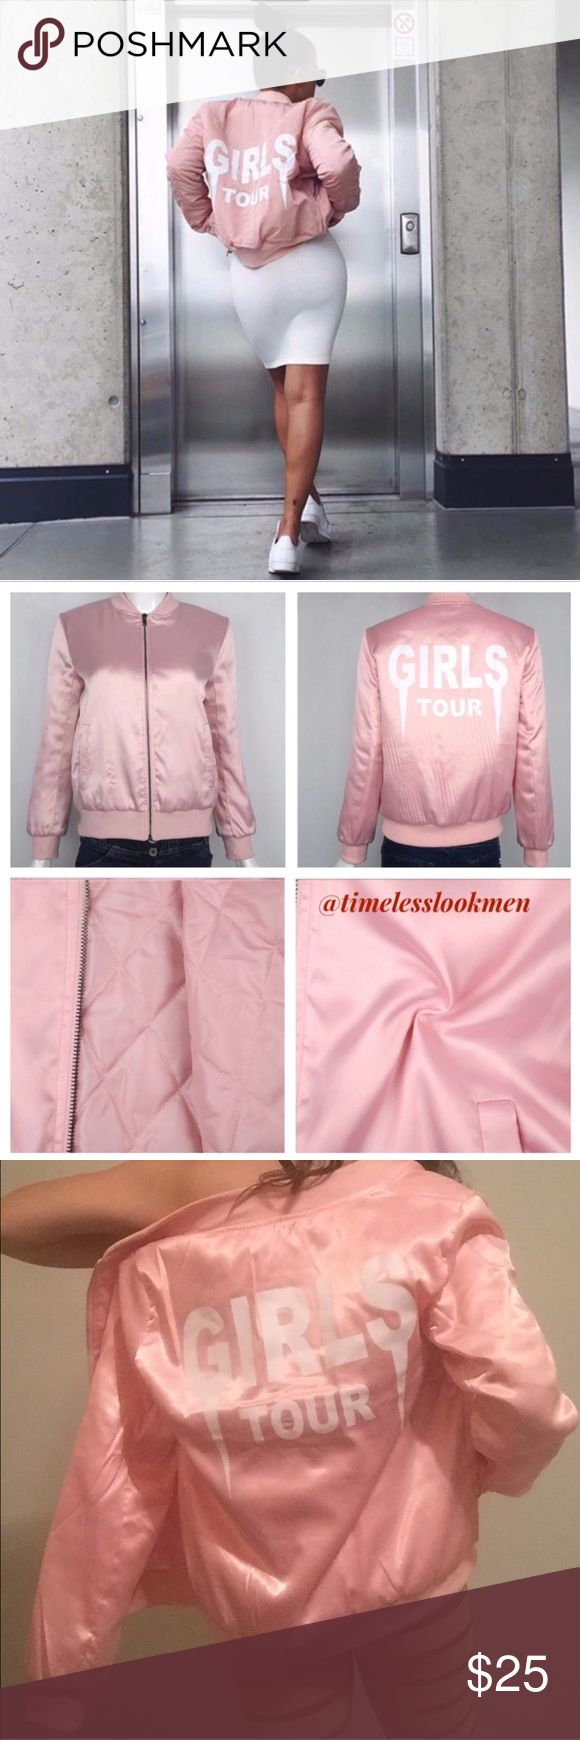 "Girls tour yeezy style pink satin bomber  jackets •brand new  •ships tomorrow •unbranded •no trades  •true to size   • super soft outside and warm quilted inside  Pink with with letters yeezus     Please visit ""Closet Rules"" for more info about us :) Jackets & Coats"